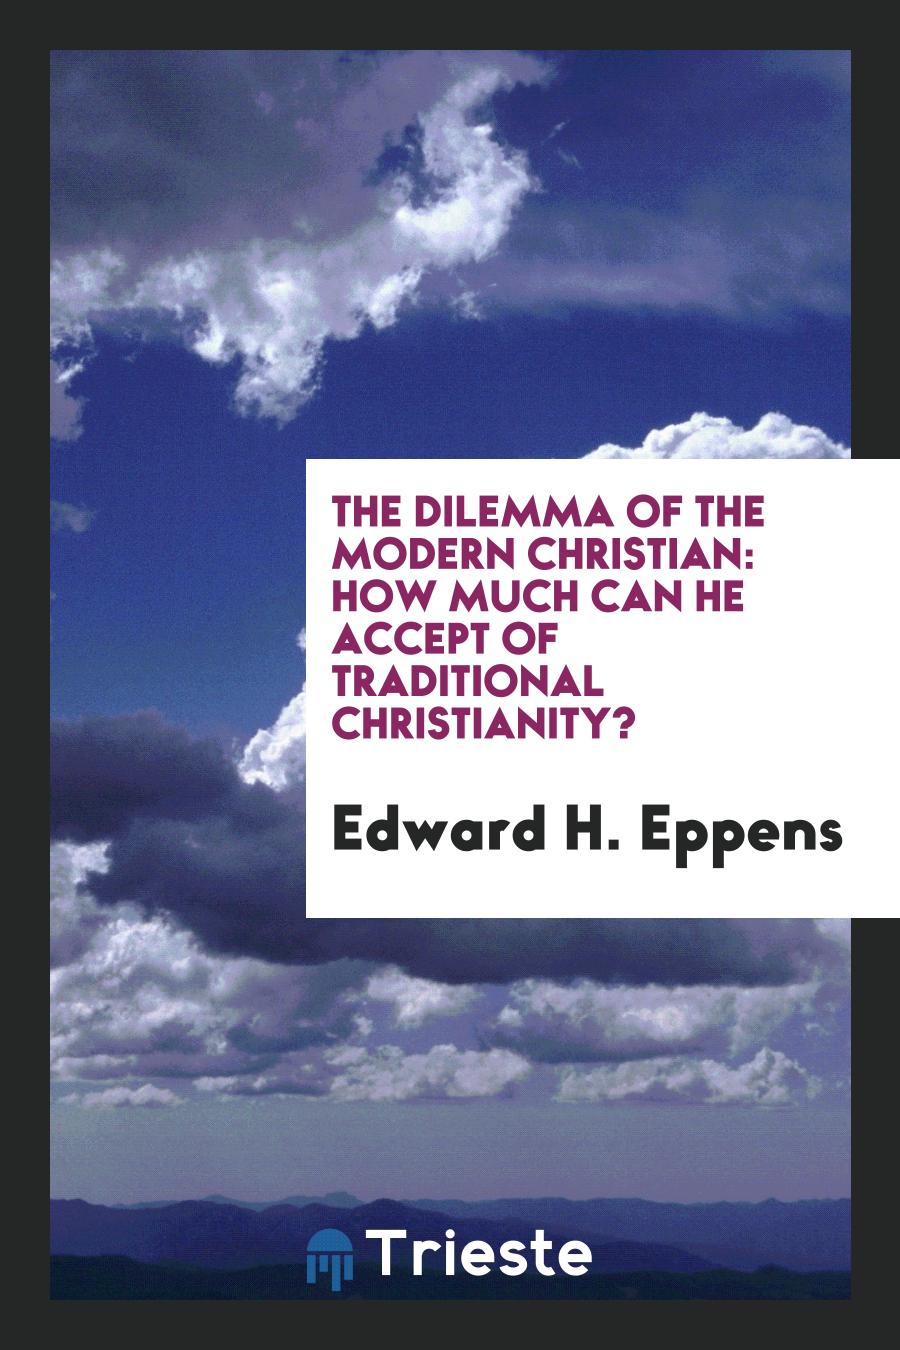 The Dilemma of the Modern Christian: How Much Can He Accept of Traditional Christianity?